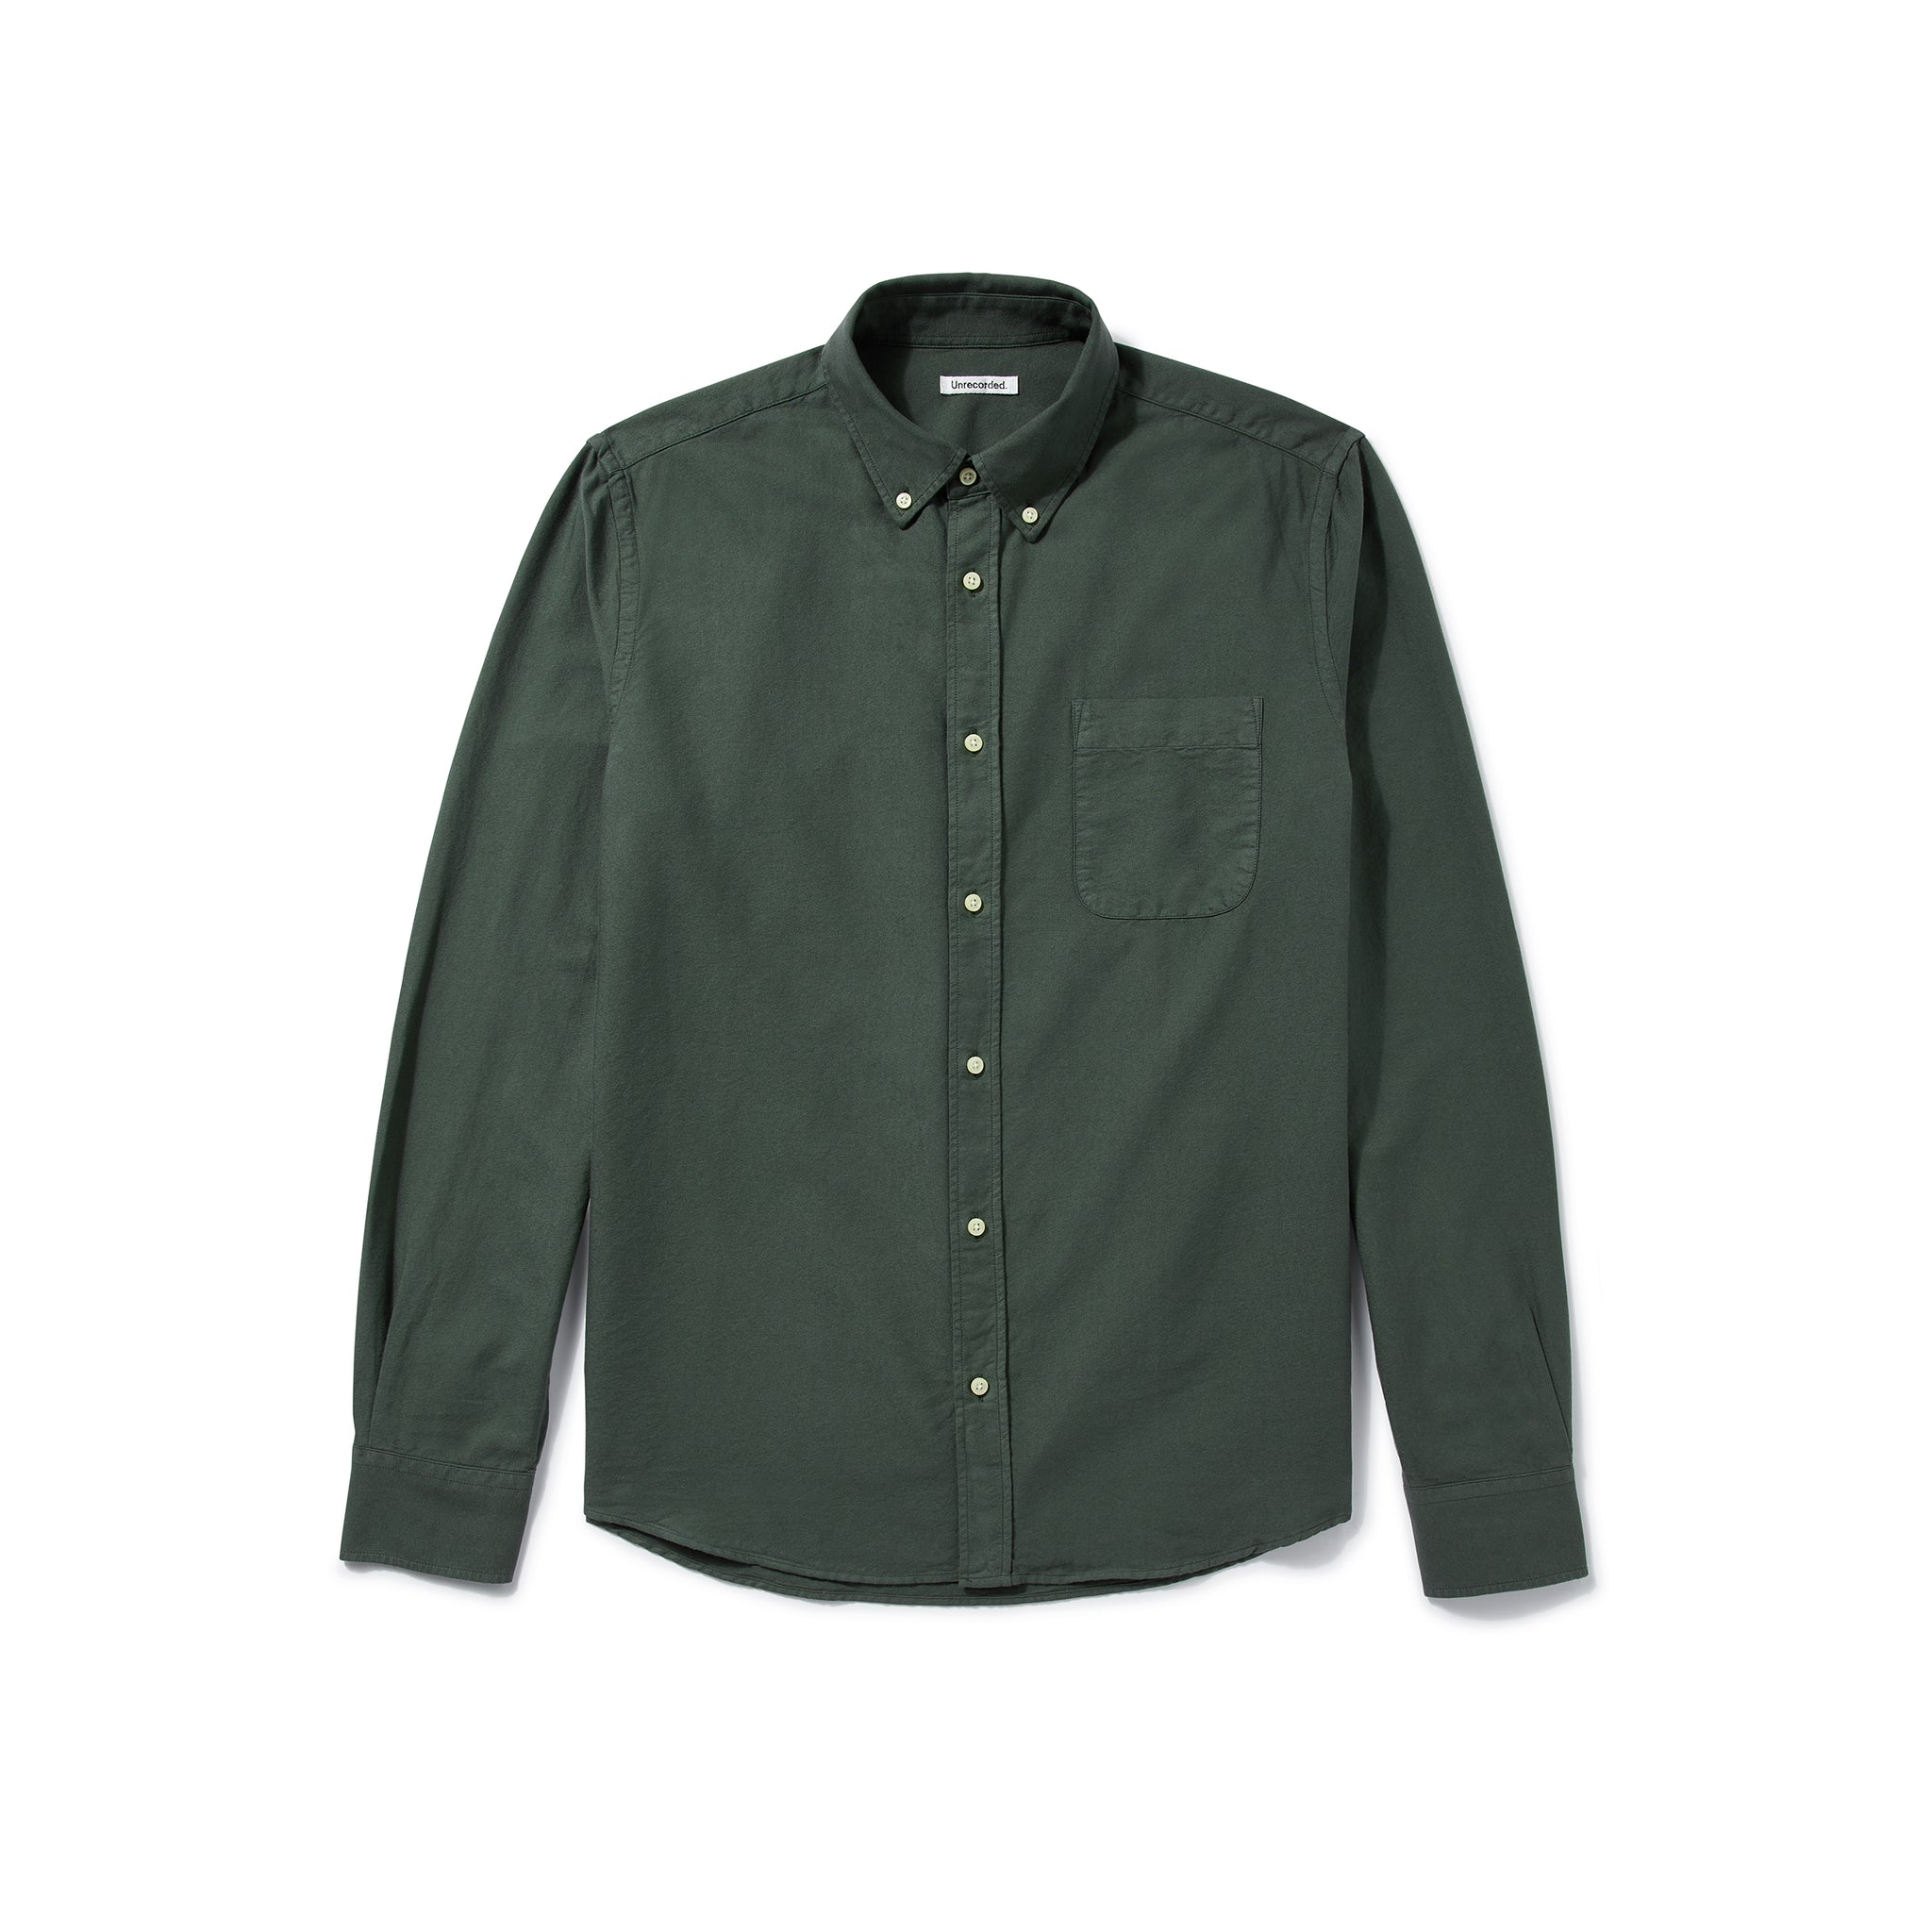 Oxford Shirt in Green made from organic cotton - Alternate